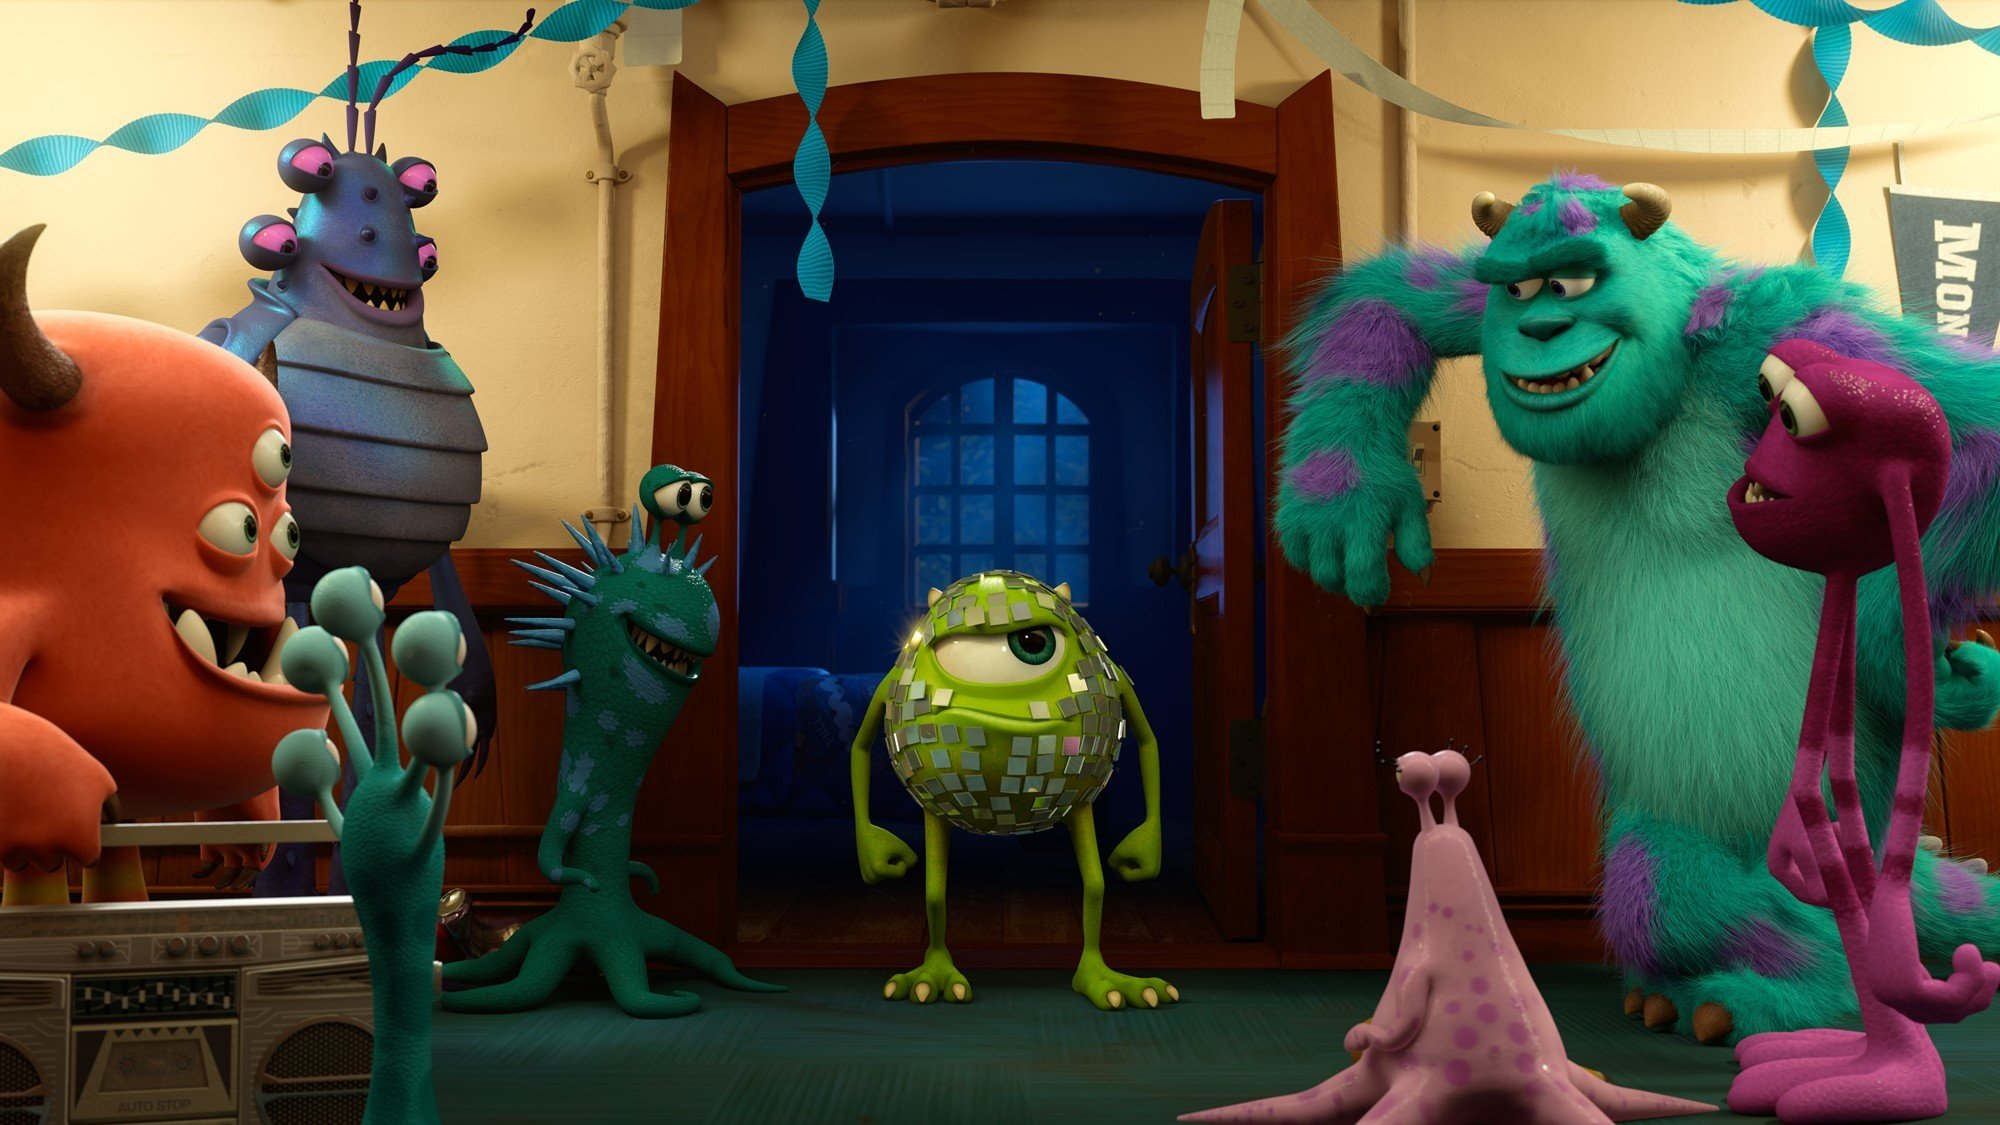 Free Download Full Movies Monsters University 2013 Subtitle English - Indonesia